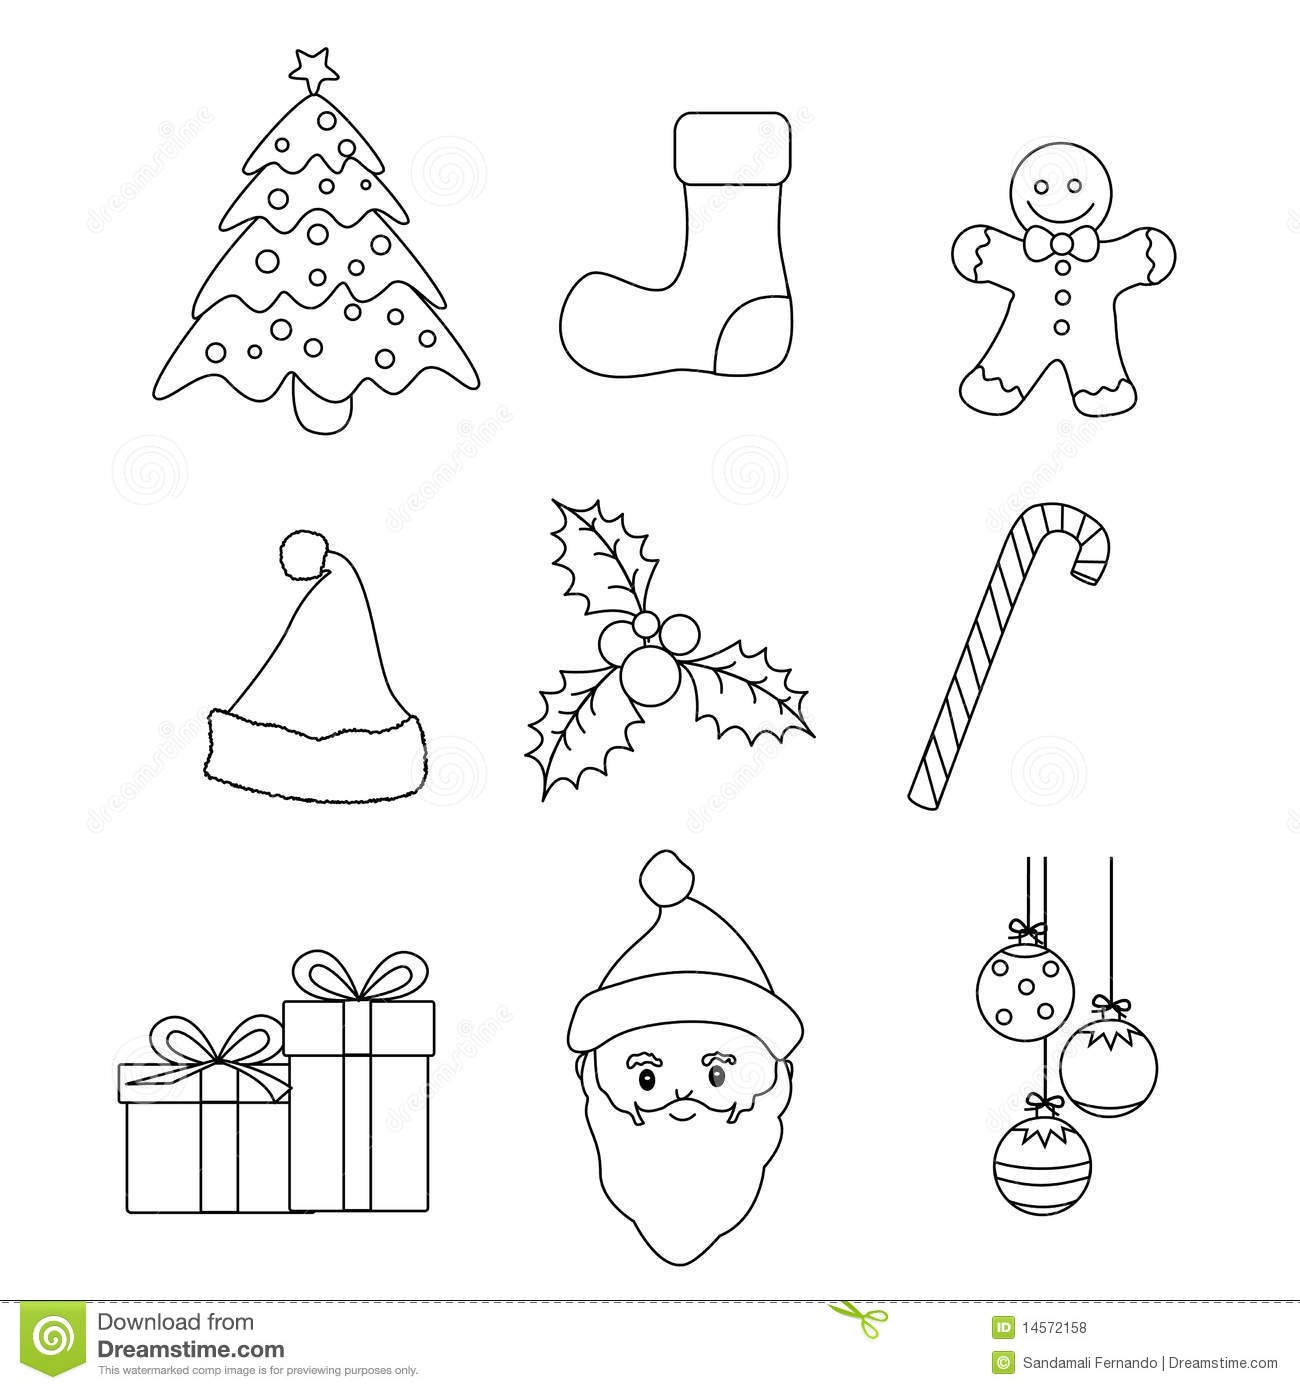 stocking coloring page - royalty free stock photos christmas icons vector image